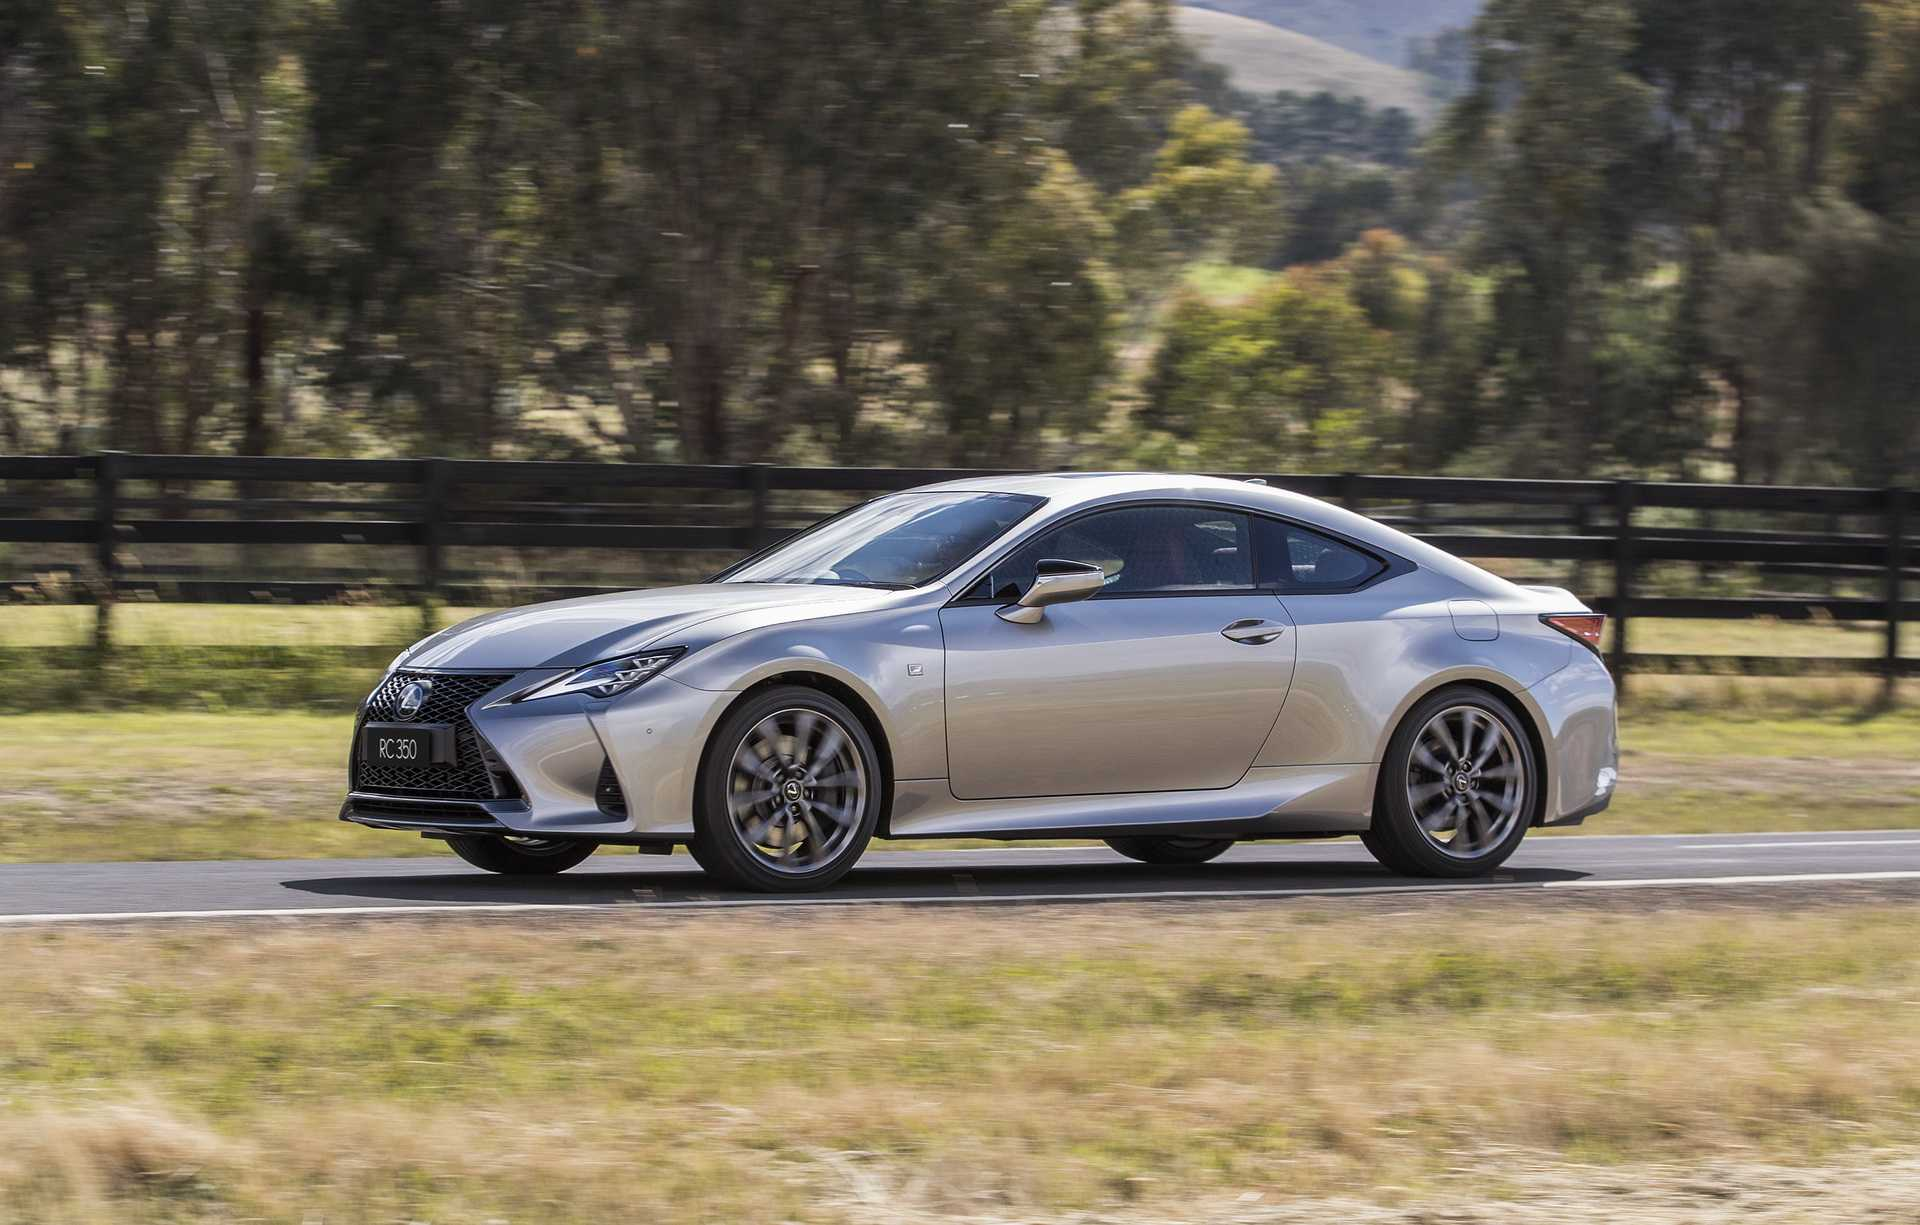 2021 Lexus RC is Bringing Multiple Improvements, Better Gear Ratio and Safety